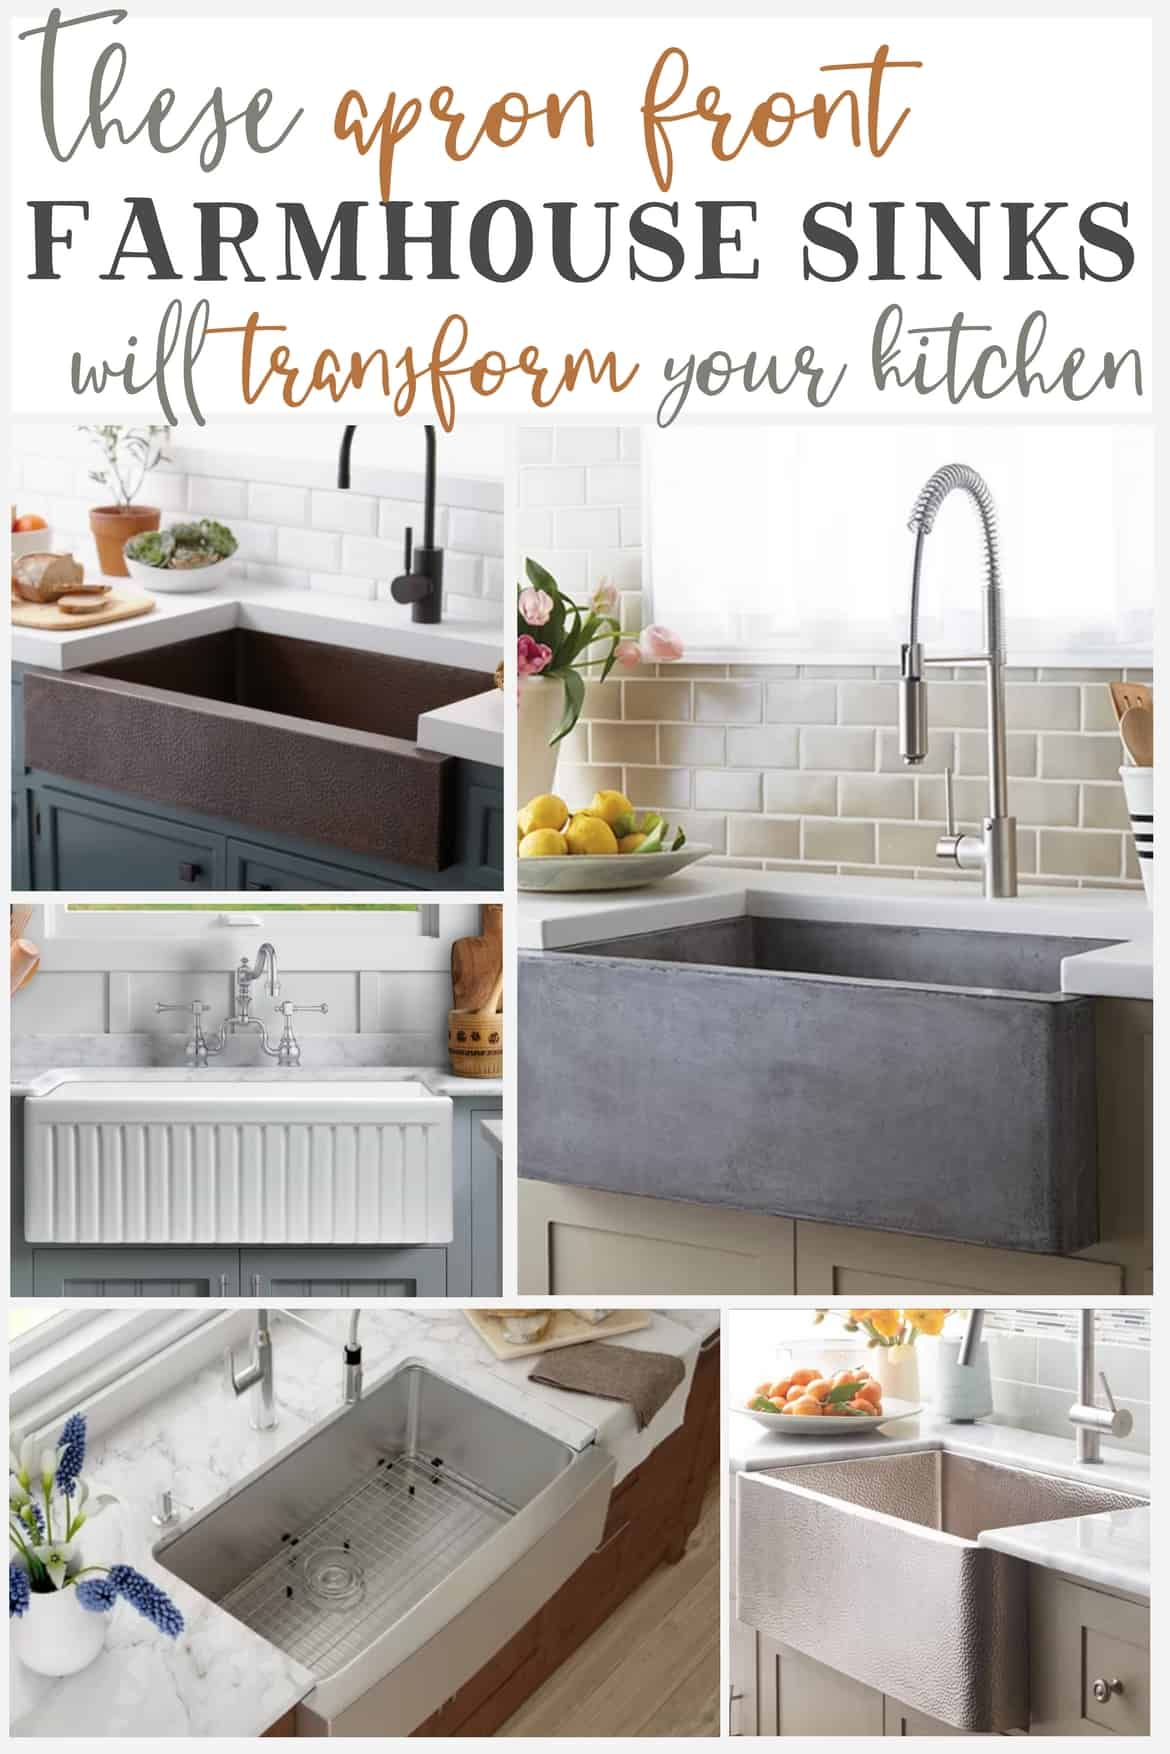 Apron front farmhouse sinks that will transform your kitchen the im lora of craftivity designs and when im creating our home i focus on function before style so before picking out the prettiest sink workwithnaturefo